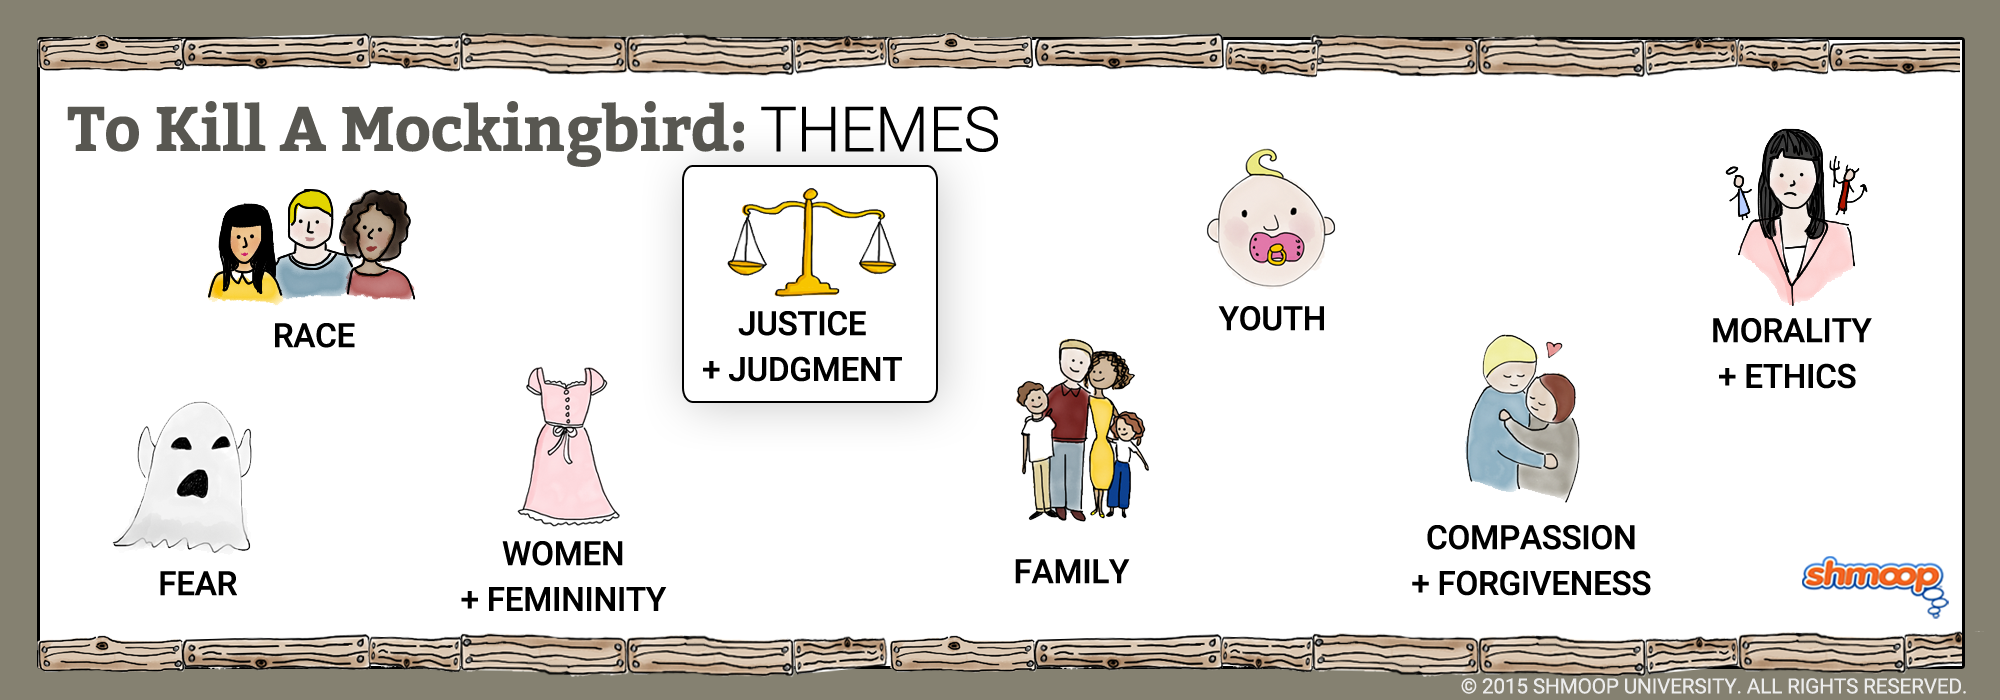 To Kill A Mockingbird Theme Of Justice And Judgment Tkam Theme Justice Judgment Justice Judgment Theme